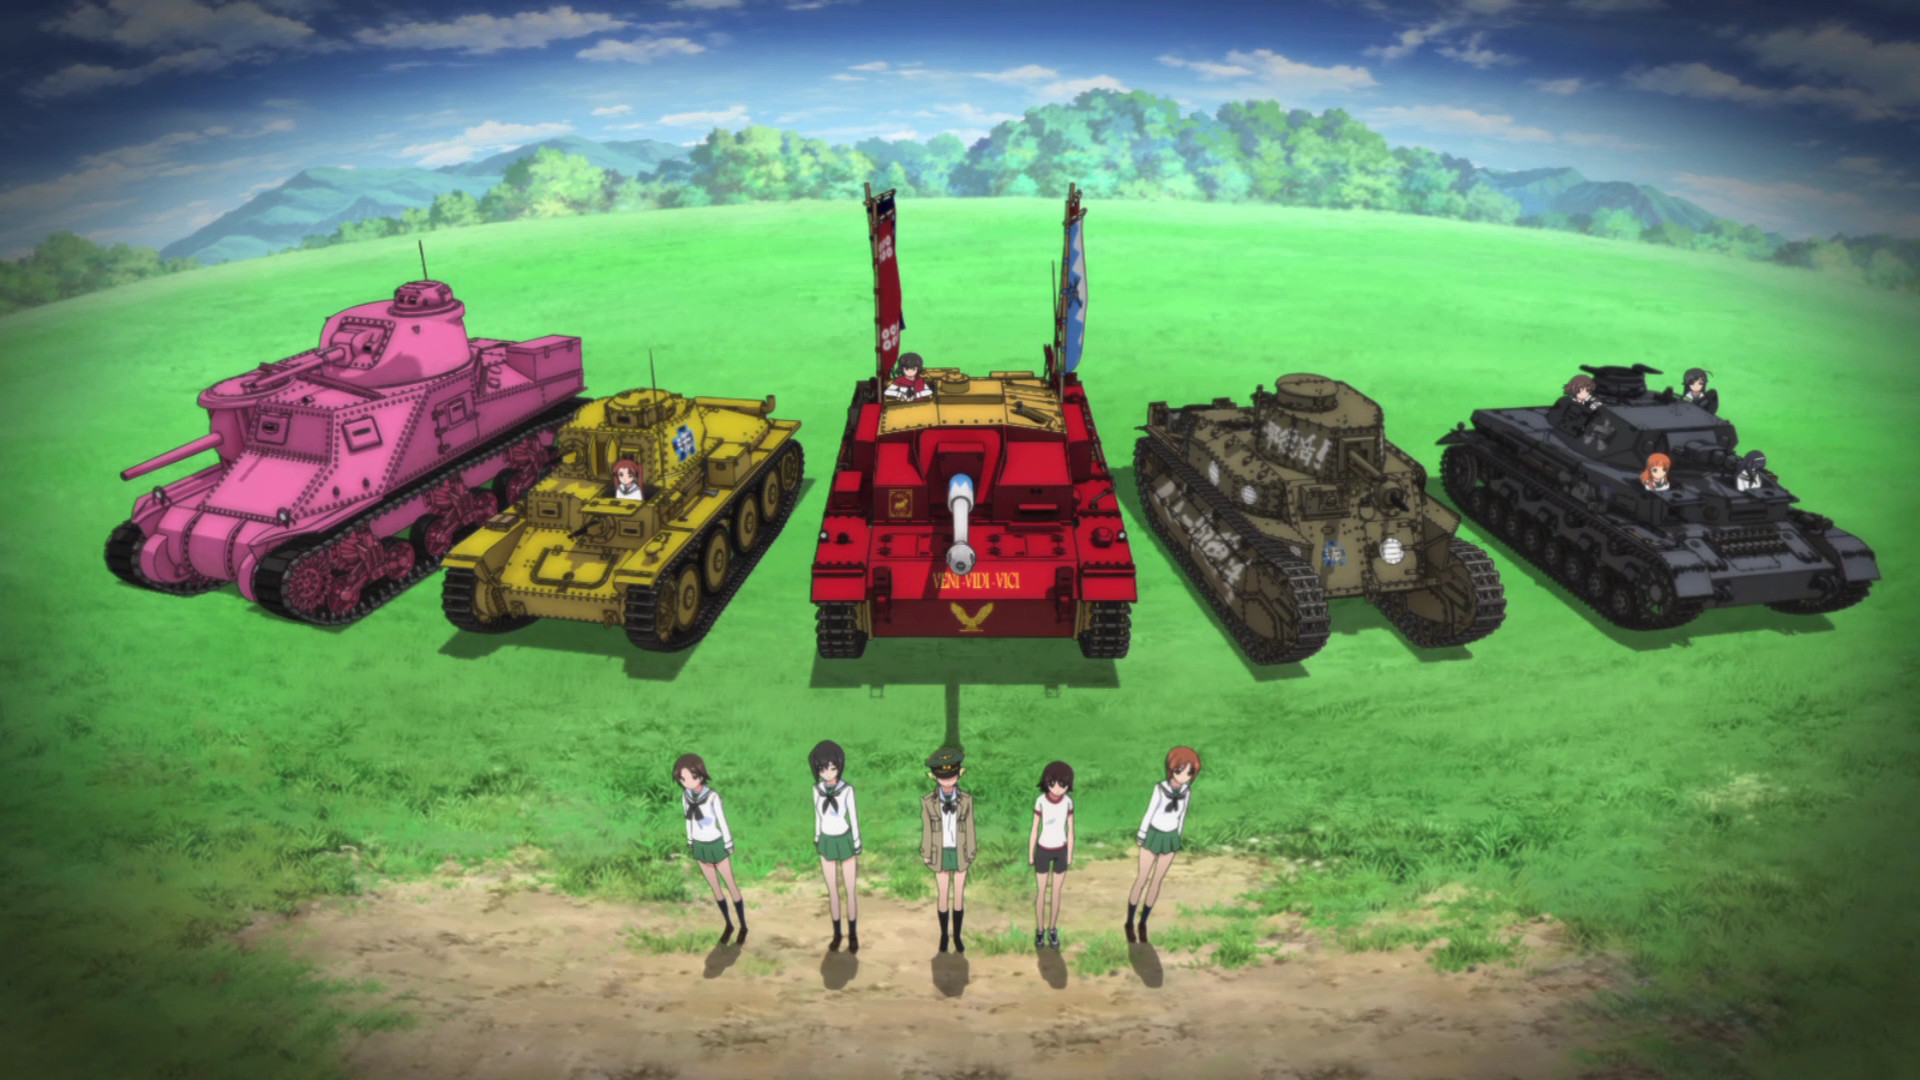 http://operationrainfall.com/wp-content/uploads/2013/01/Girls-und-Panzer-Tanks-0011.jpg